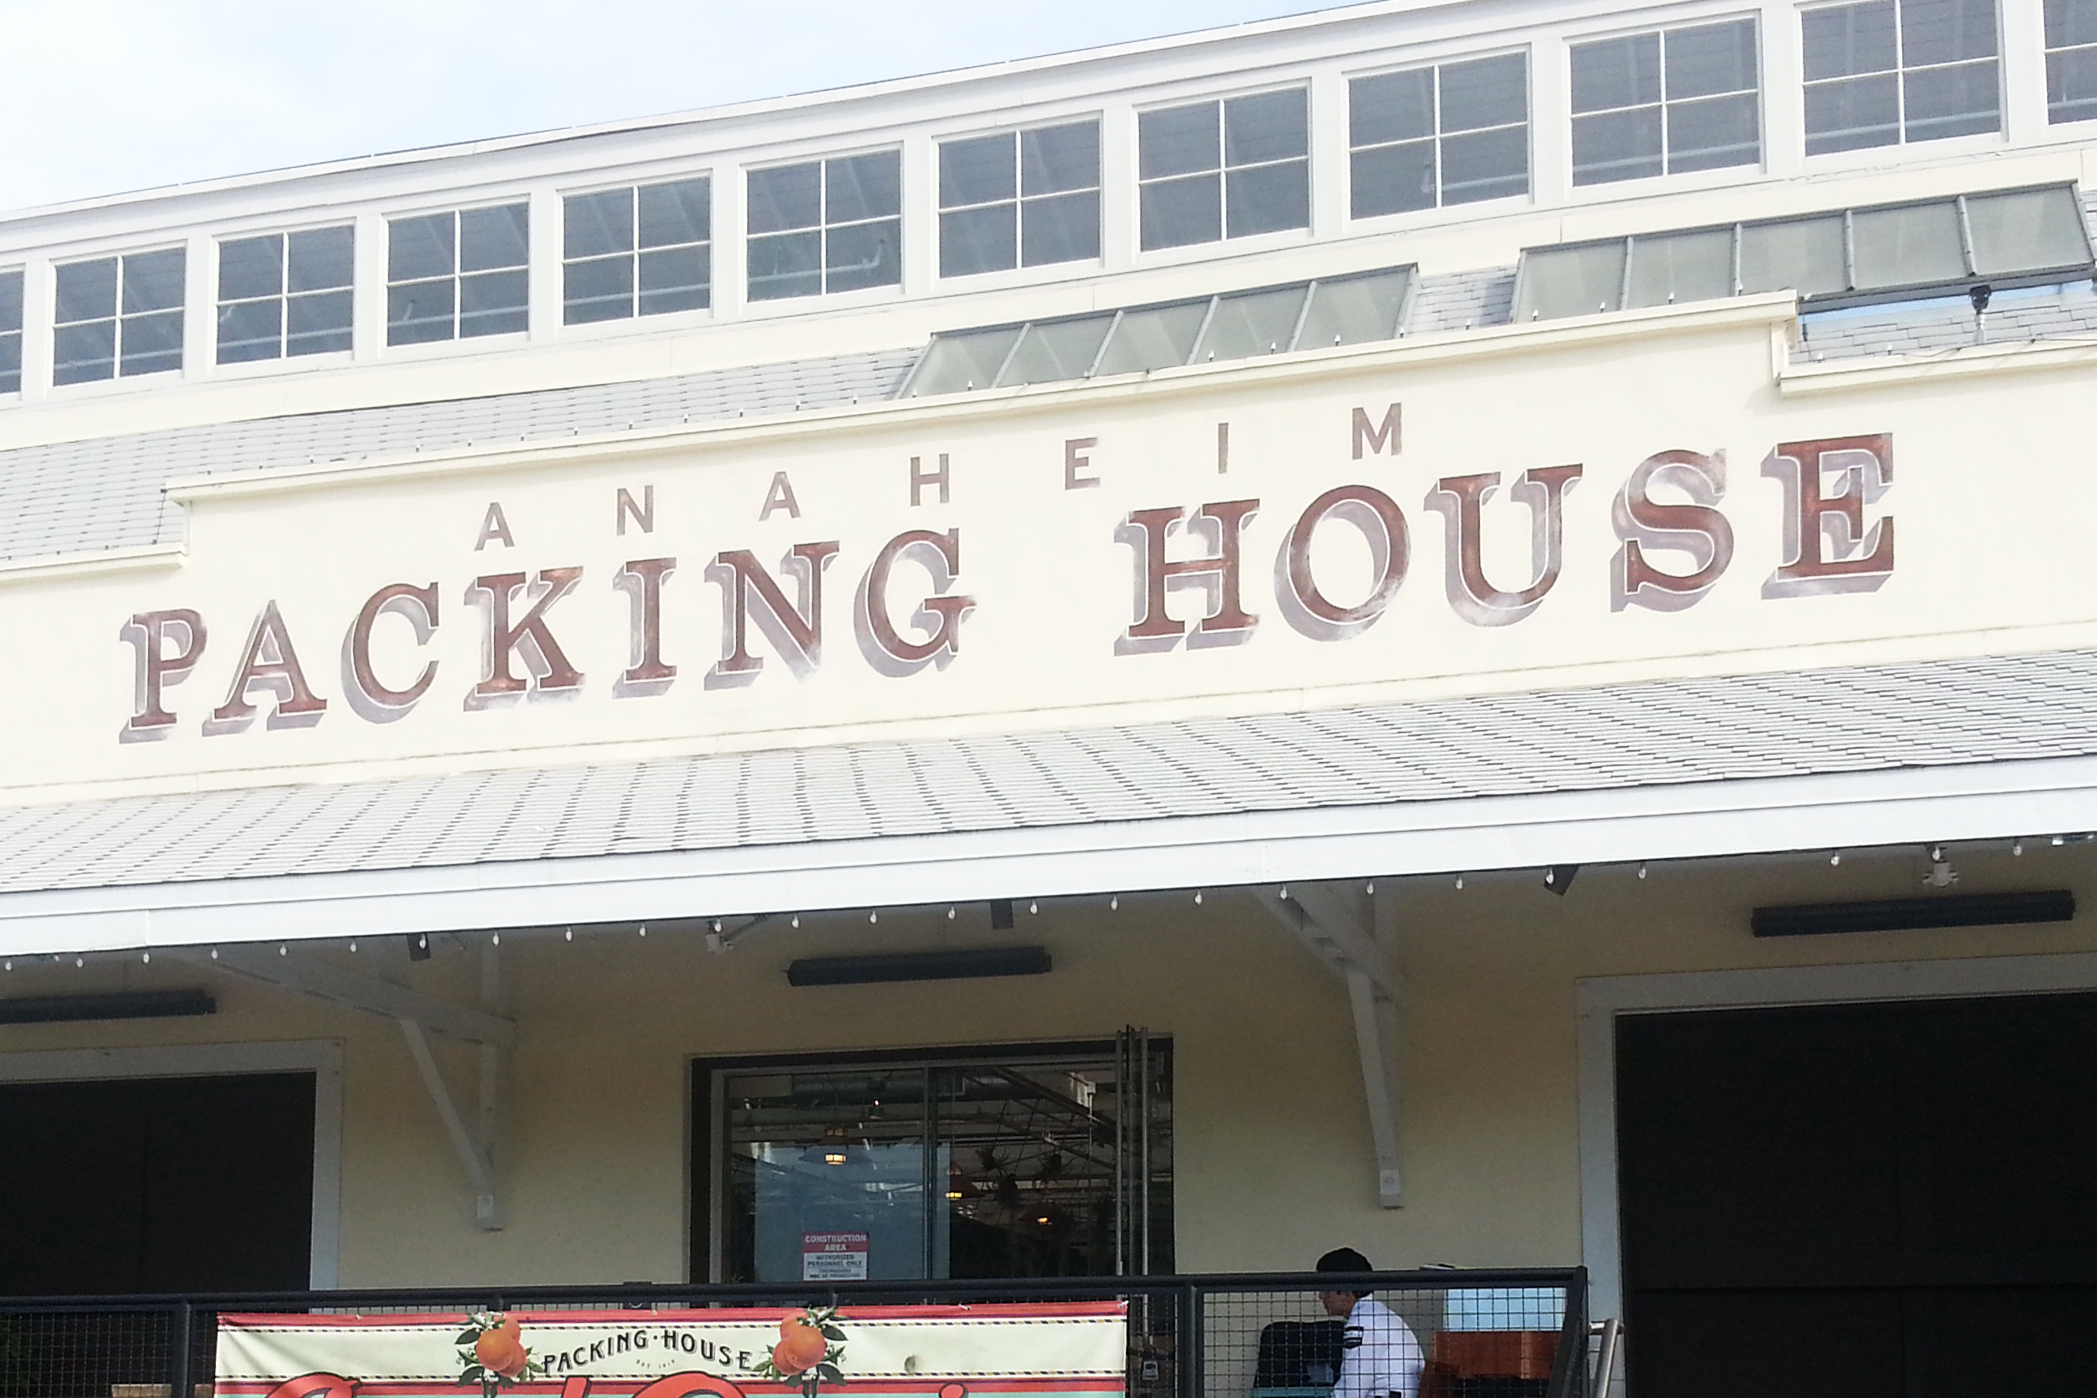 Anaheim Packing House hand painted graphic mural - entrance